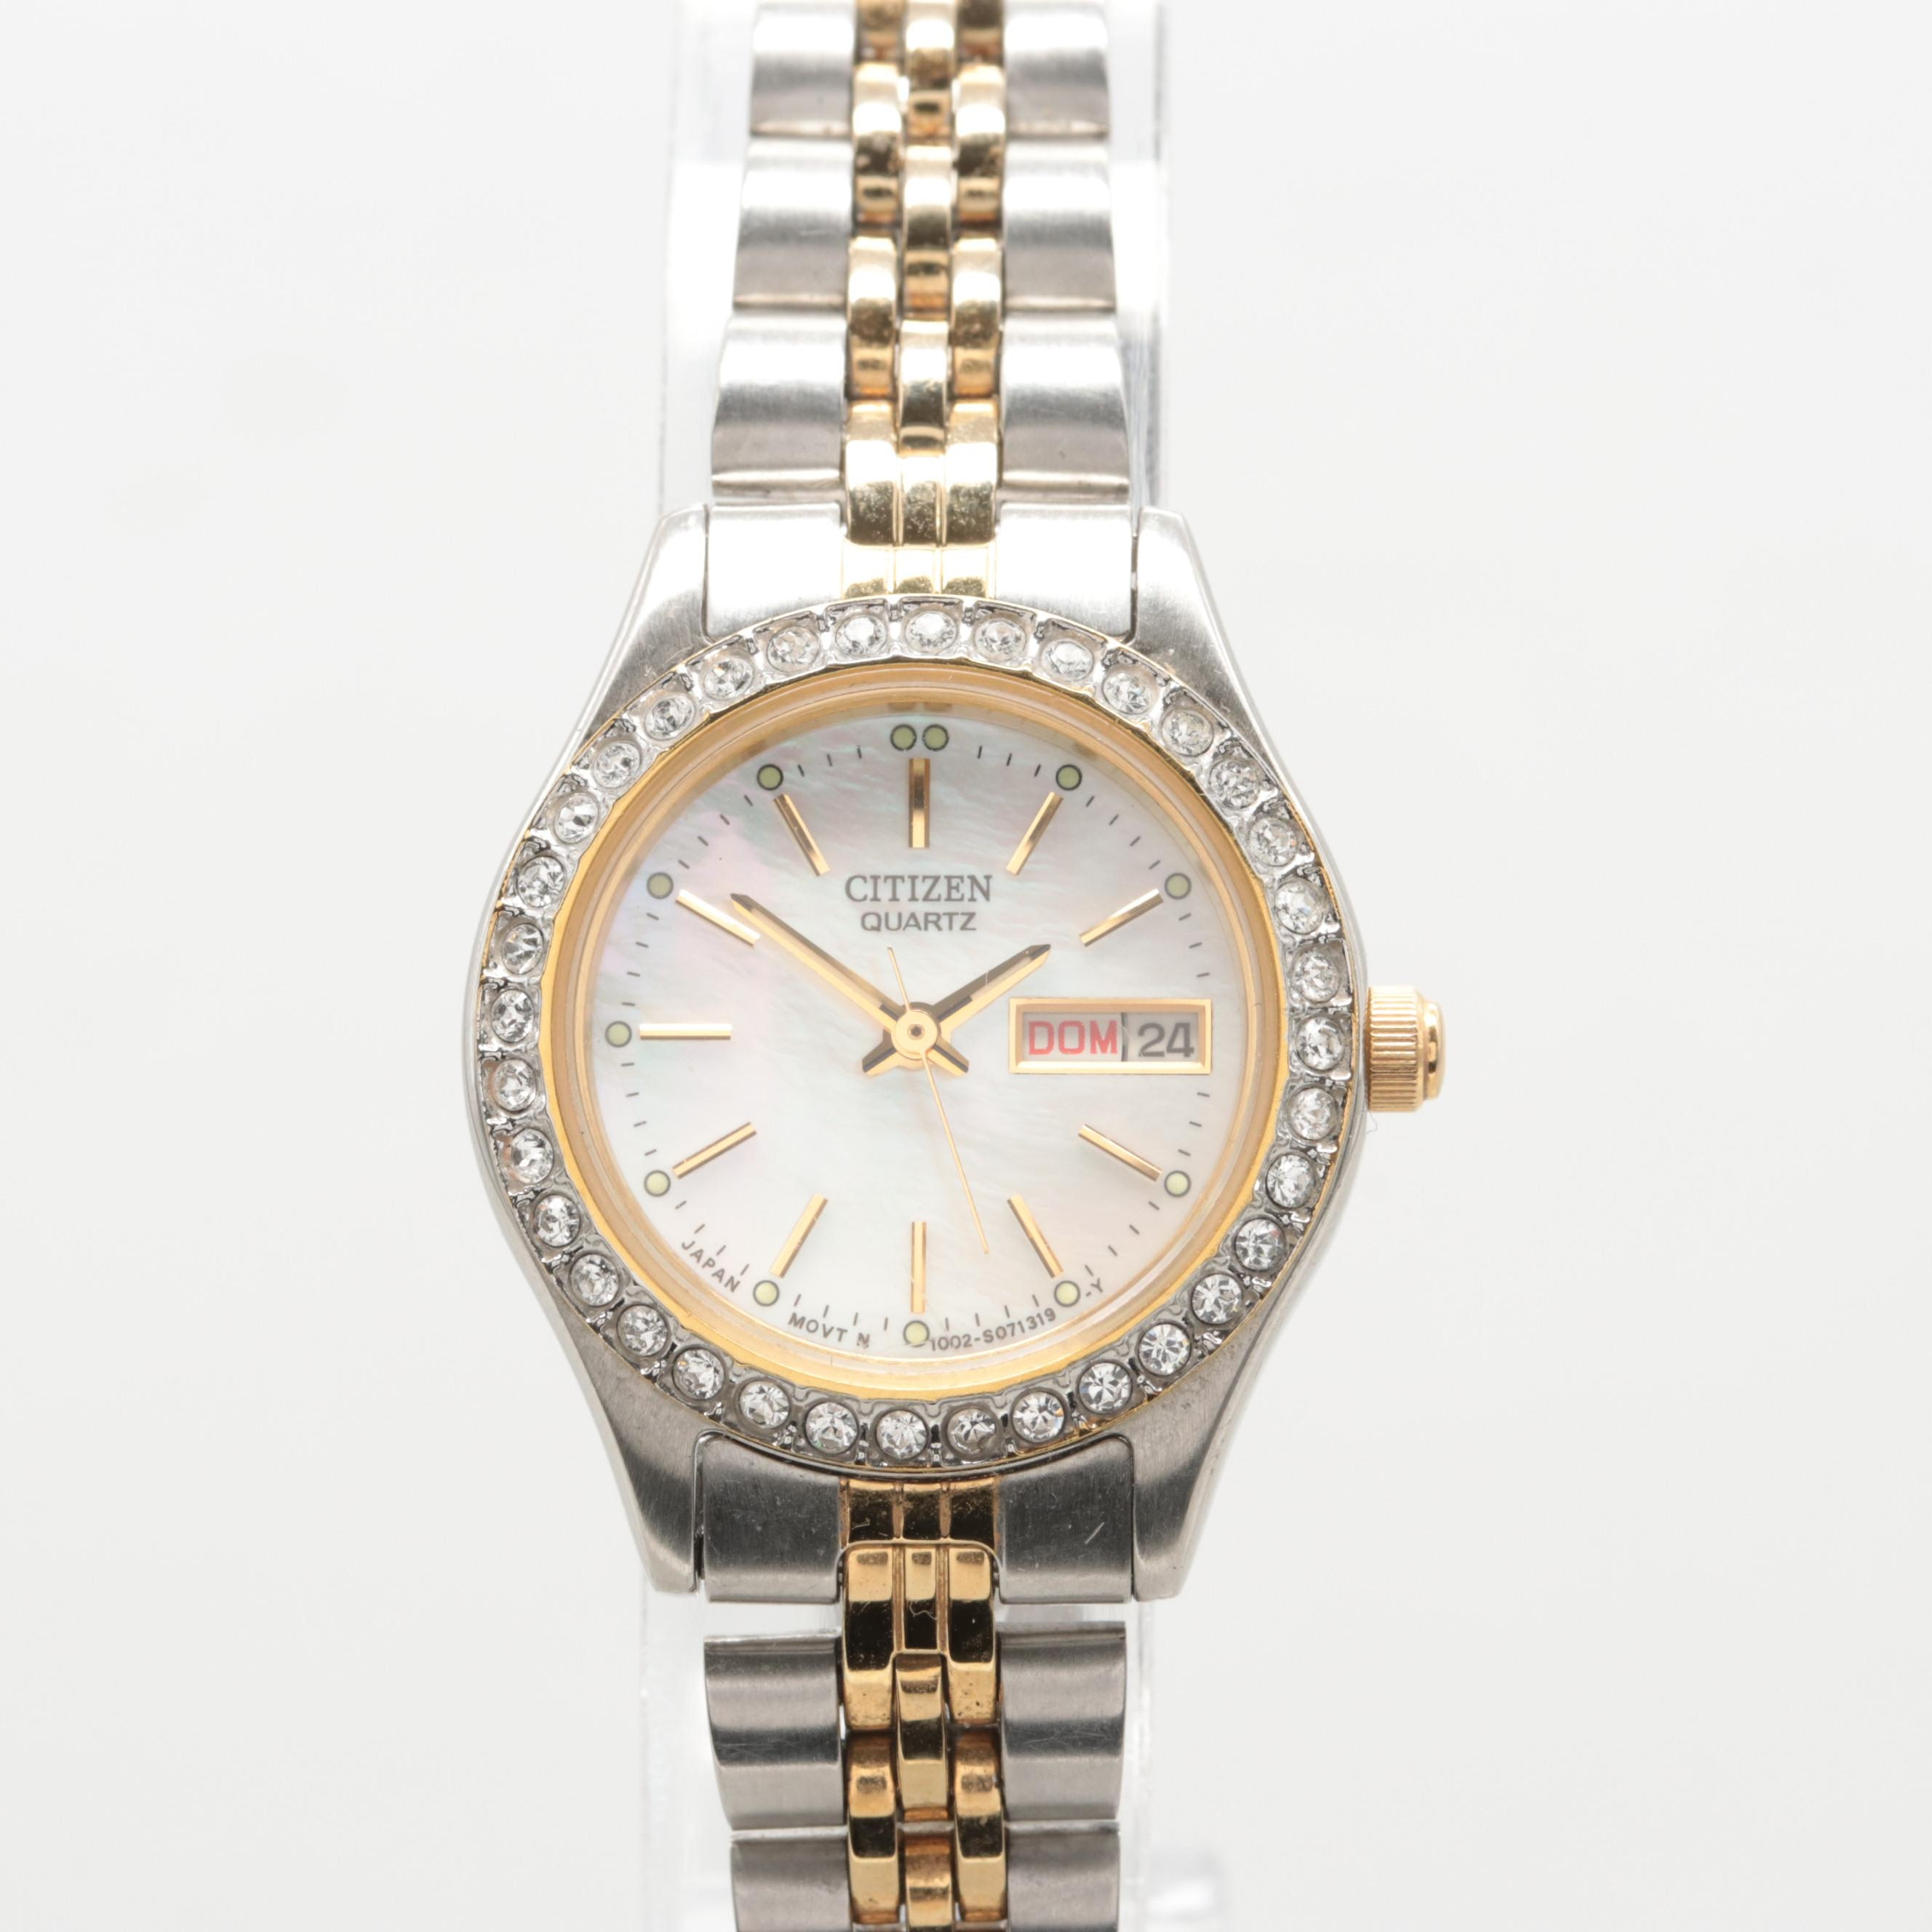 Citizen Stainless Steel Mother of Pearl and Swarovski Crystal Wristwatch